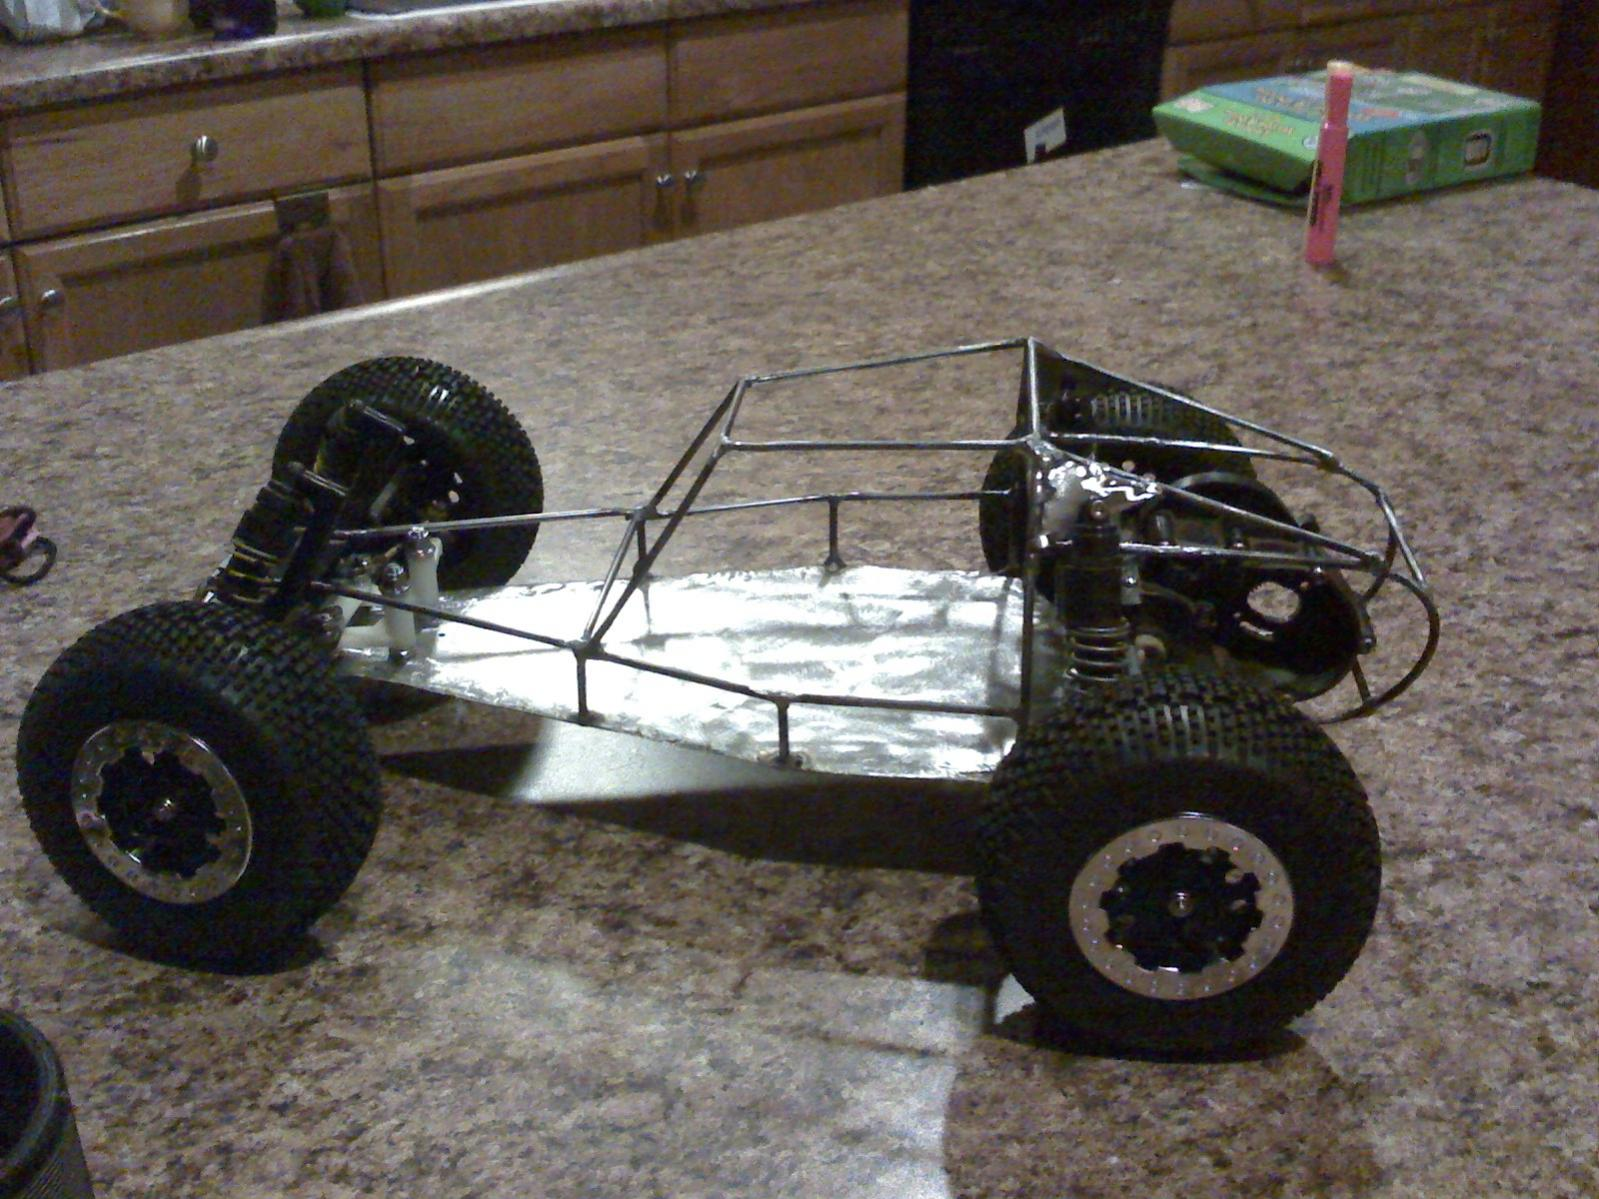 San Tan Vw >> my custom rustler SANDRAIL check it out - R/C Tech Forums